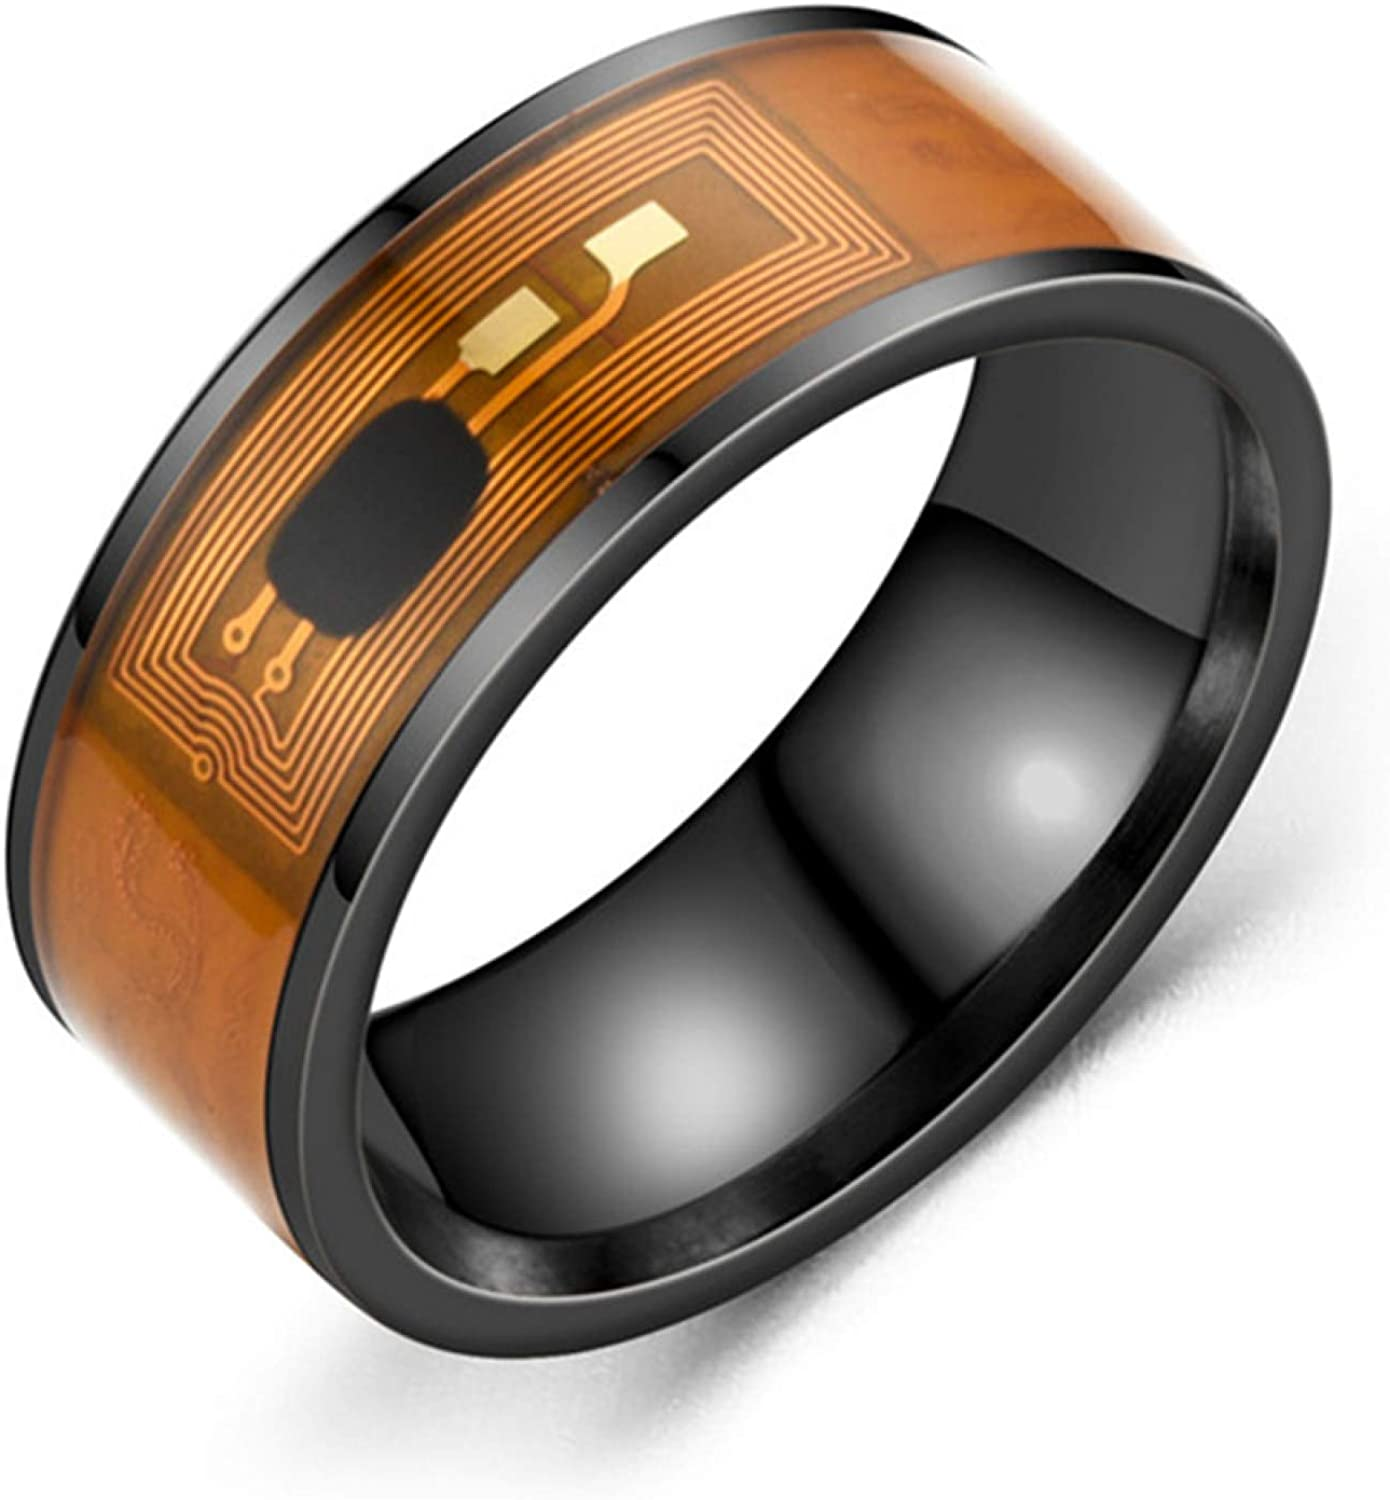 Tennessee526 NFC Stainless Steel Phone Chip Dripping Oil Dual Dragon Pattern Smart Ring Gift